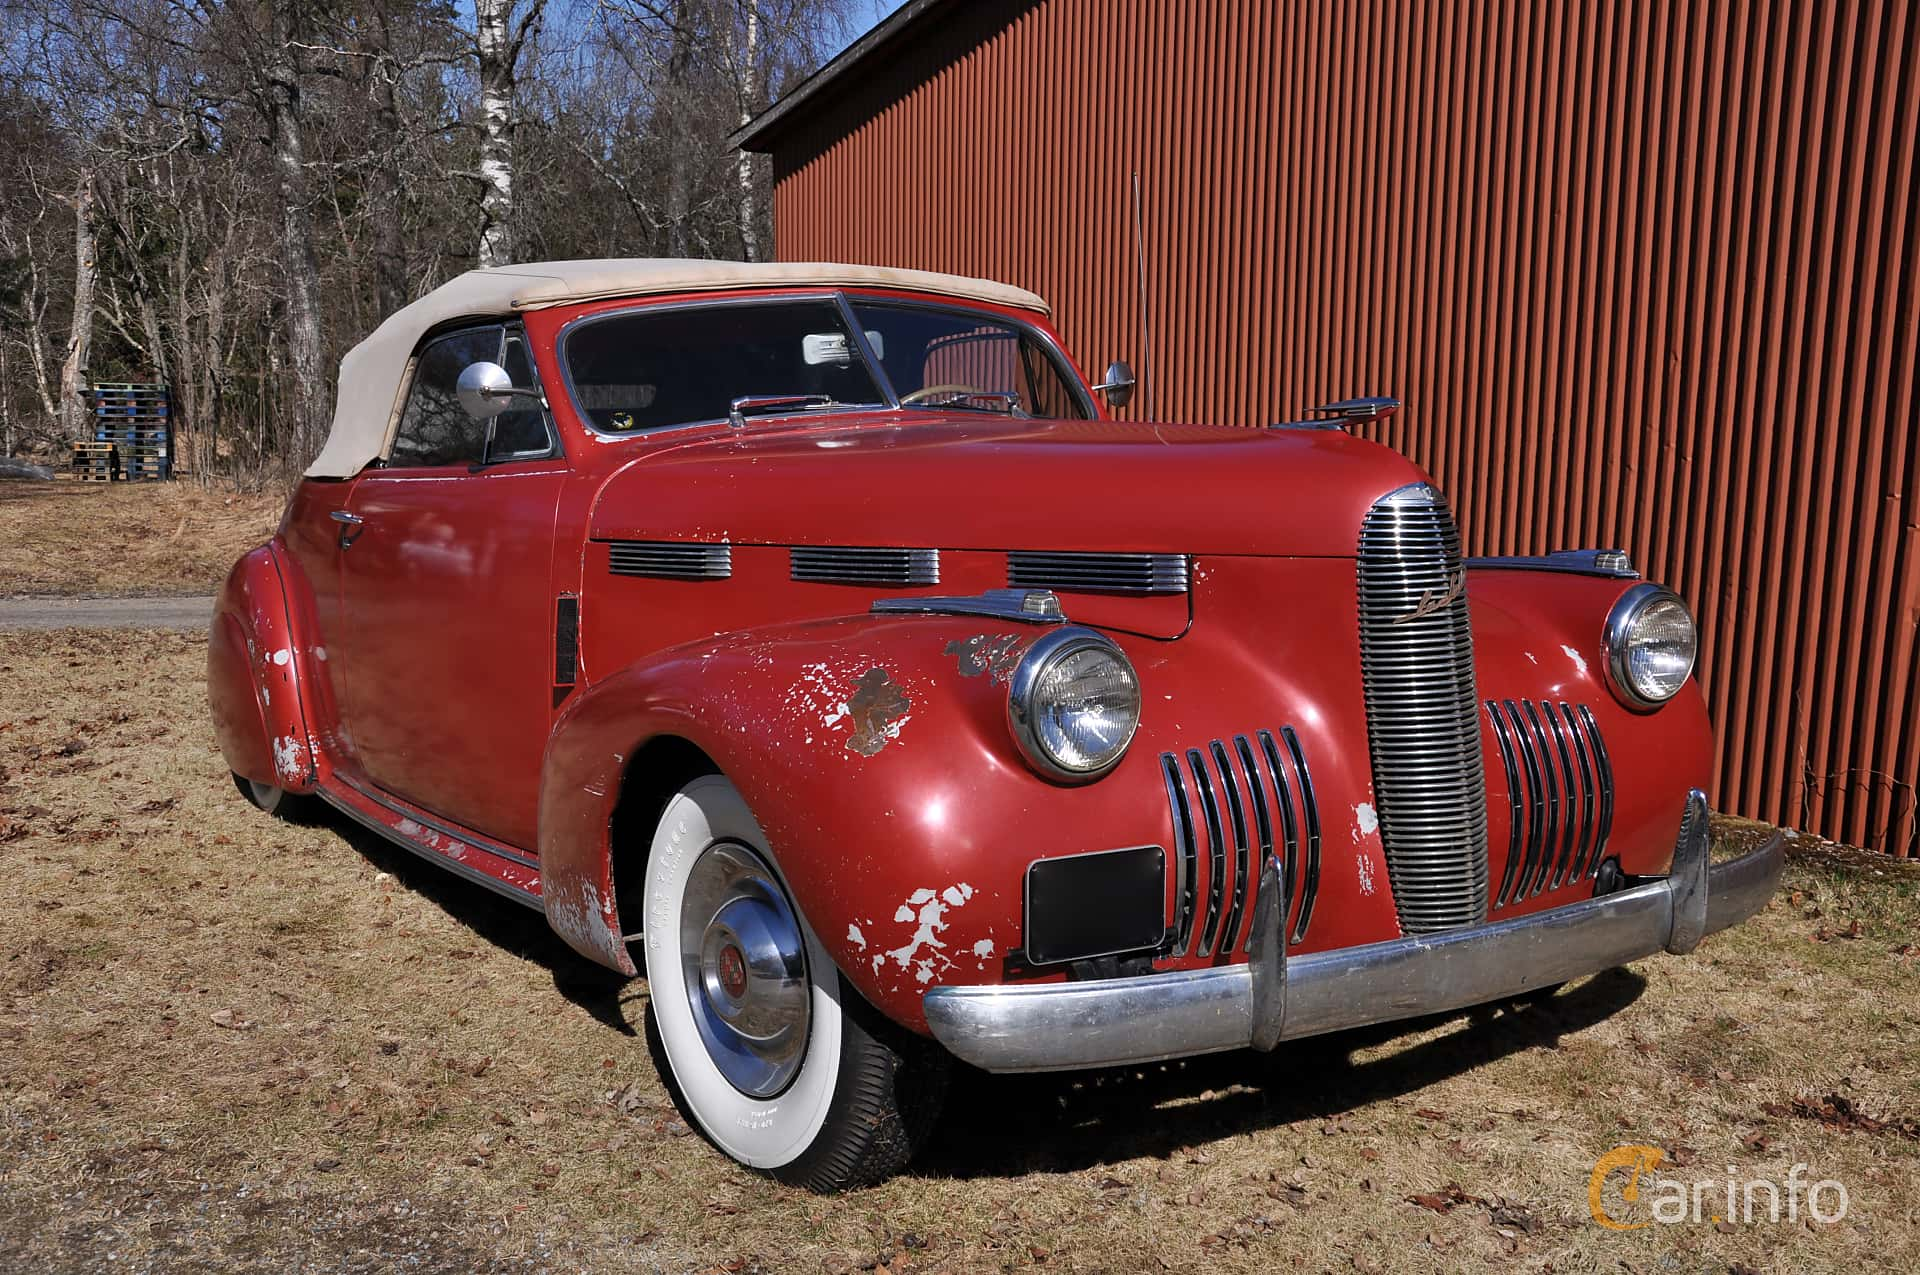 Cadillac LaSalle Convertible Coupe 5.3 Manual, 130hp, 1940